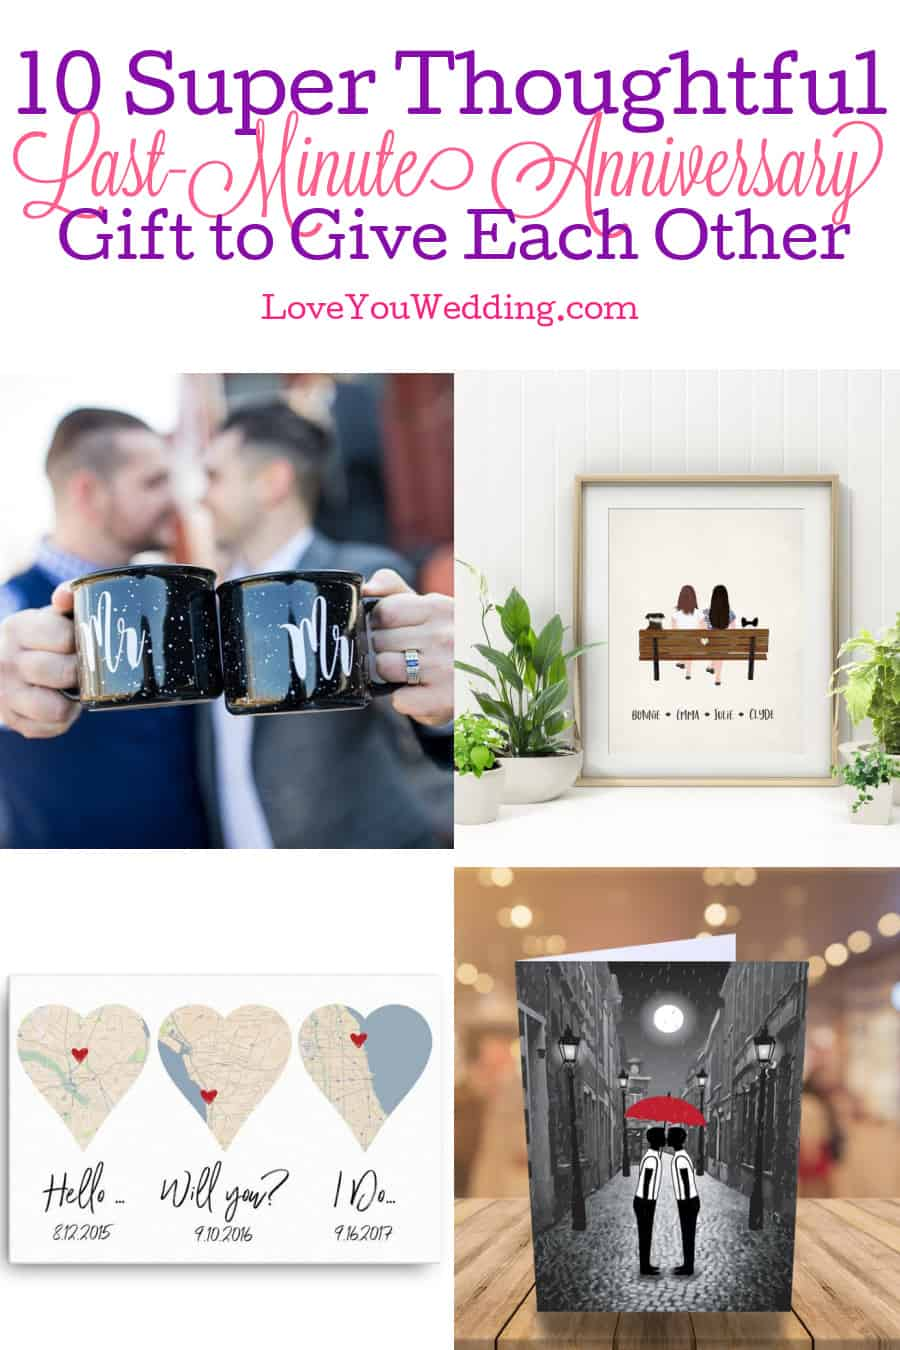 If you're searching for last-minute wedding anniversary ideas - we've got you covered! Check out 10 great gifts for gay and lesbian couples!